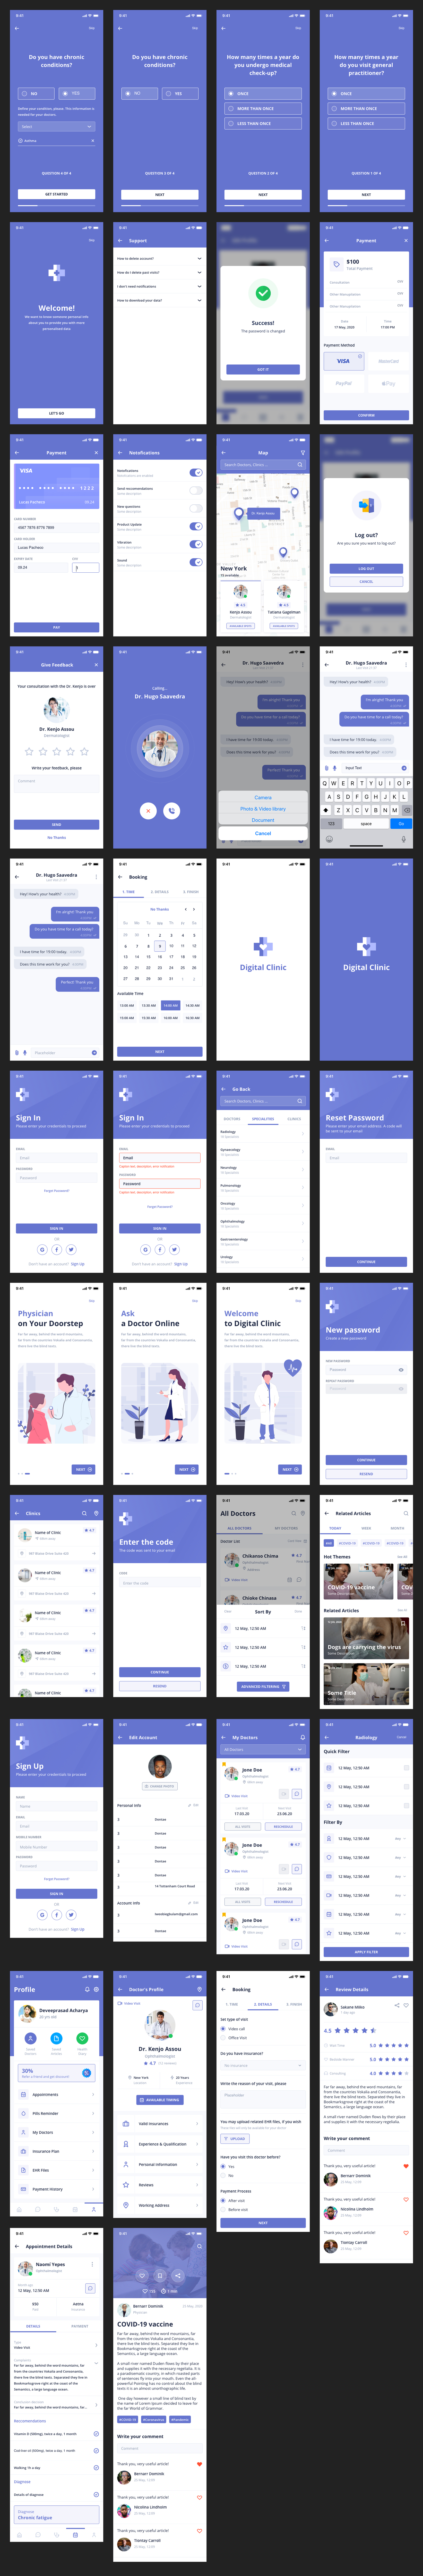 Digital Clinic Free UI Kit for Sketch - A Digital Clinic UI Kit based on Eva Design System contains 50+ general-purpose mobile screens designed with the best UX/UI practices. UI Kit will help you to create a clear and functional interface for your next mobile app faster.